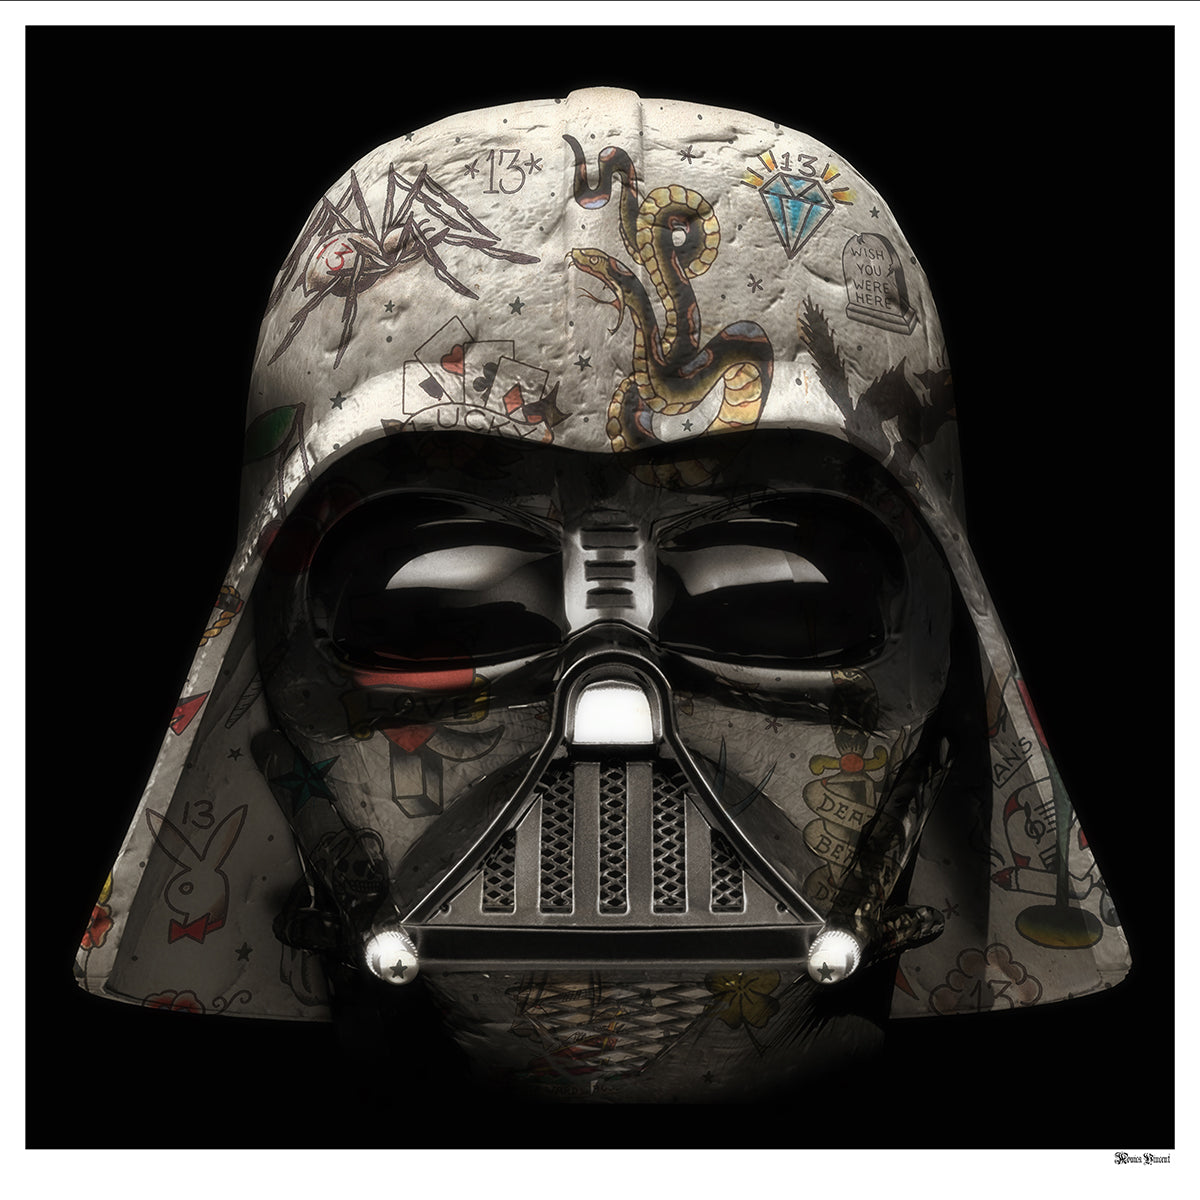 Monica Vincent - 'Darth Vader' - Limited Edition Print